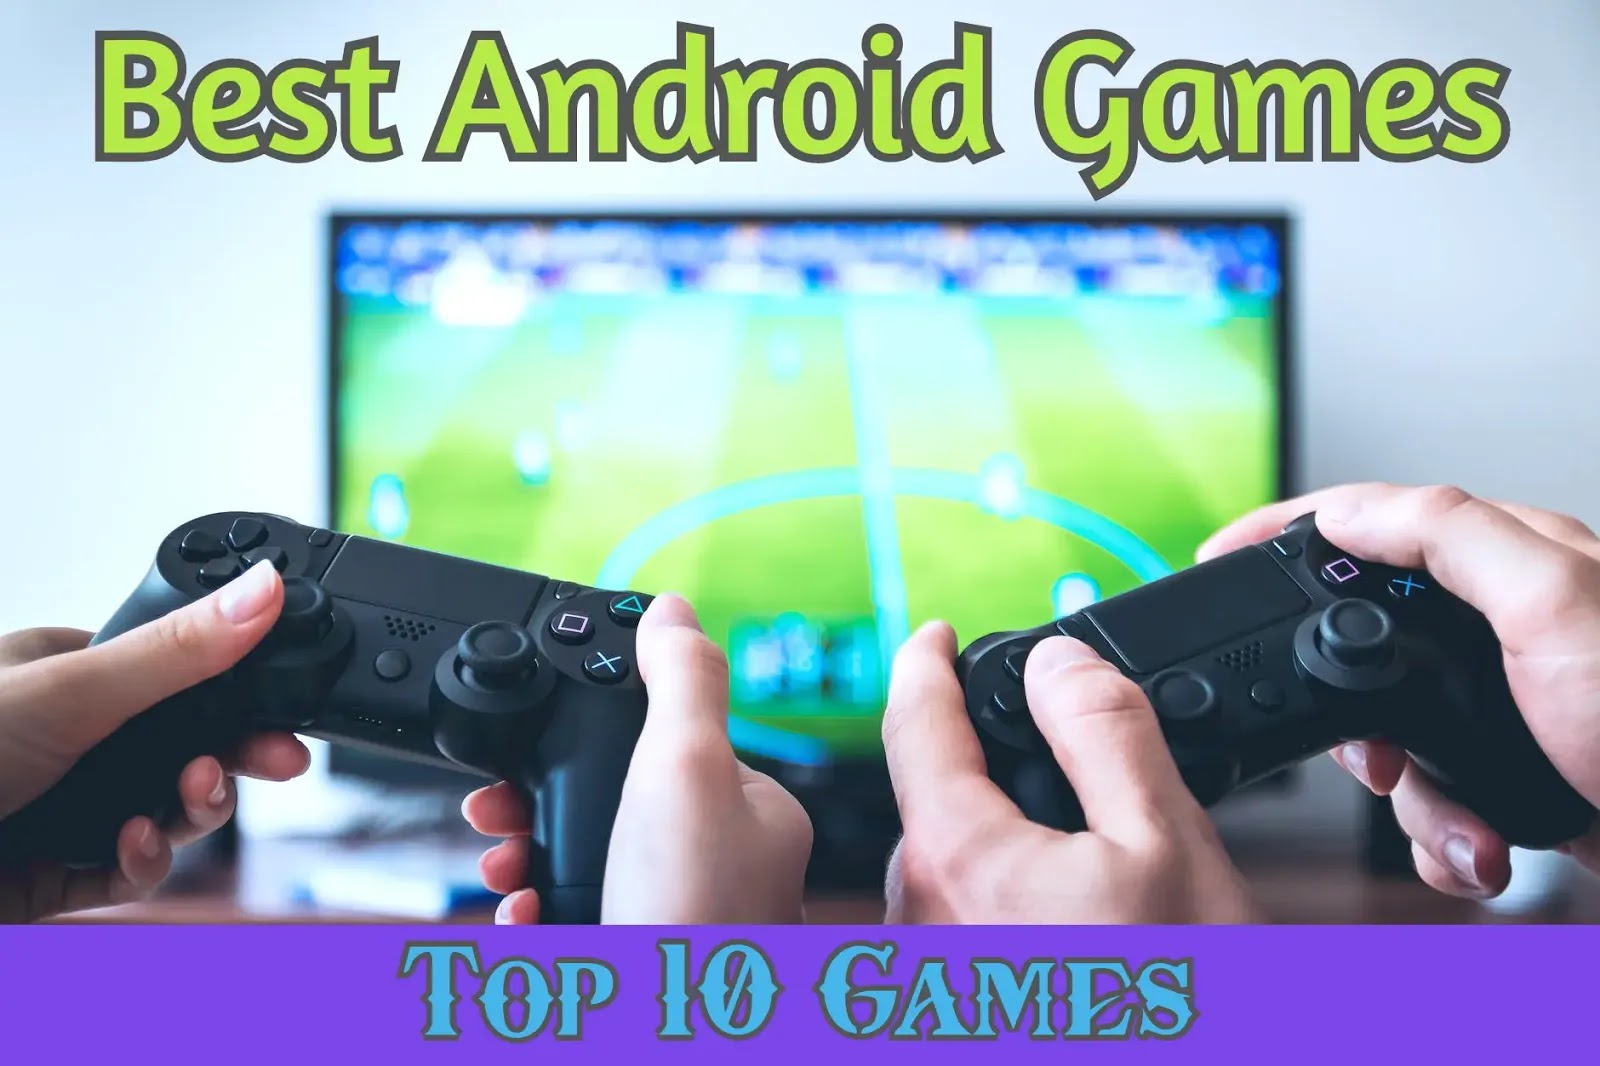 Top 10 best Android games to Play!